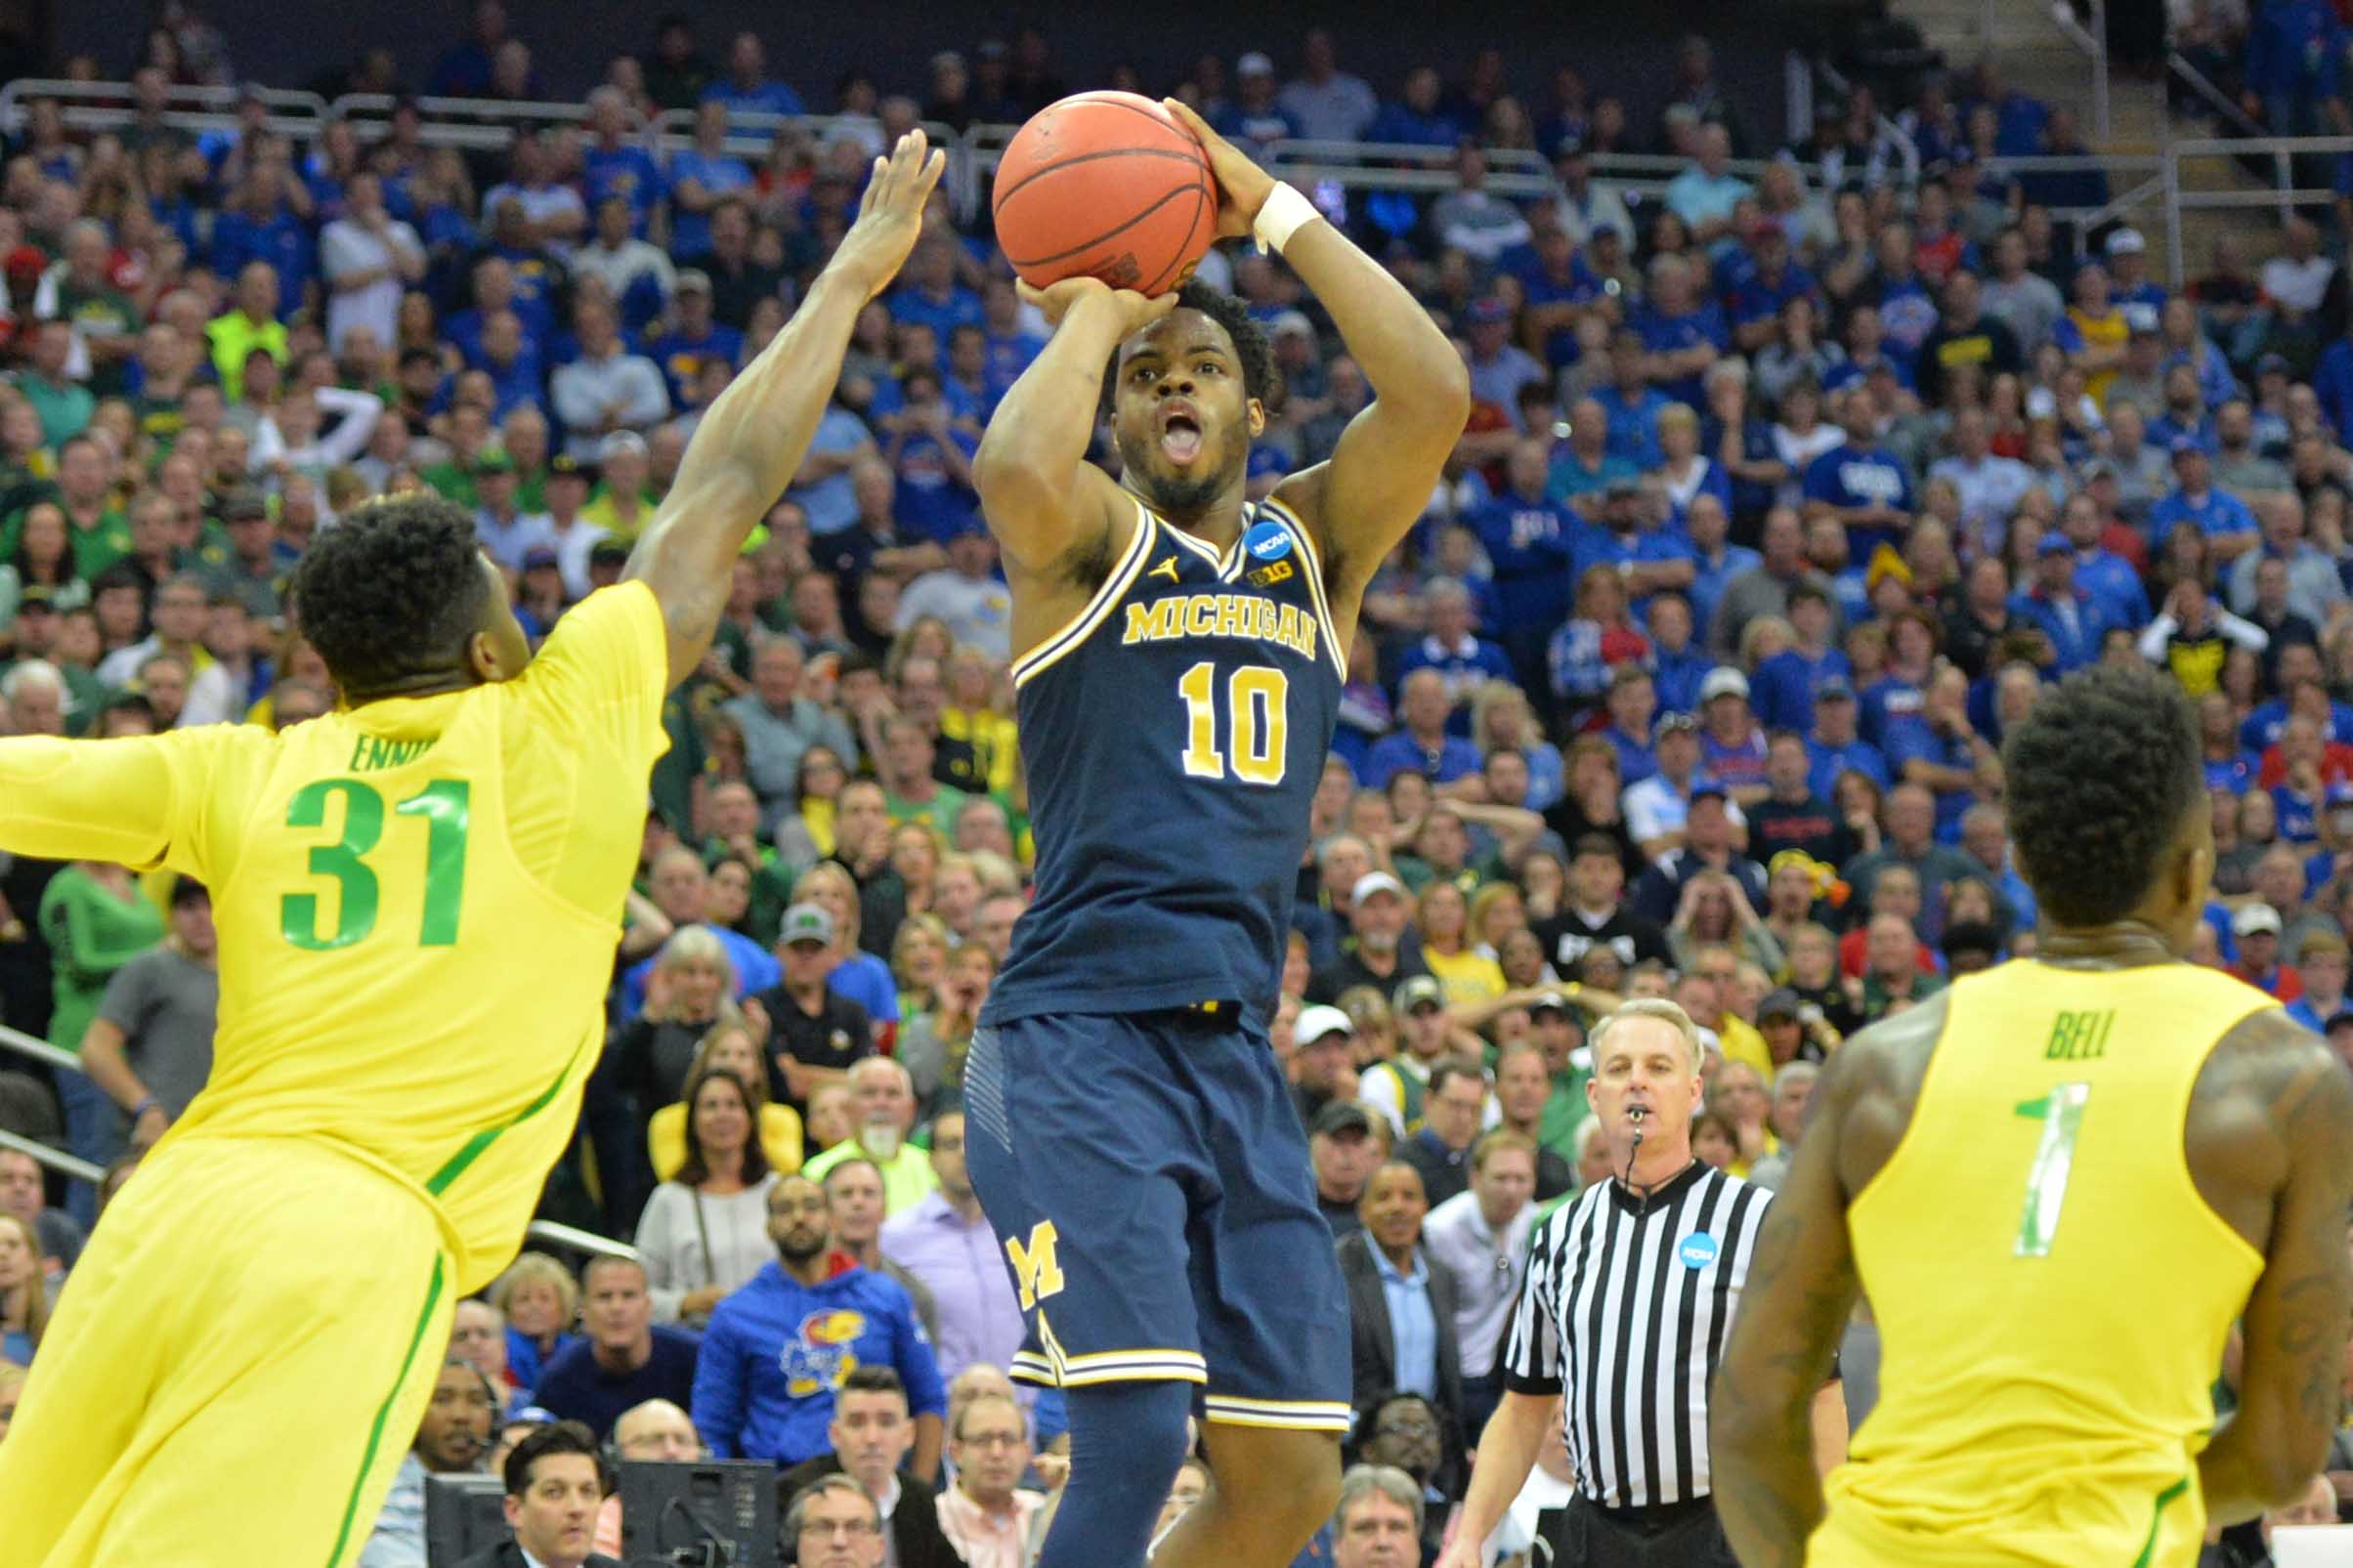 9966680-ncaa-basketball-ncaa-tournament-midwest-regional-oregon-vs-michigan-1